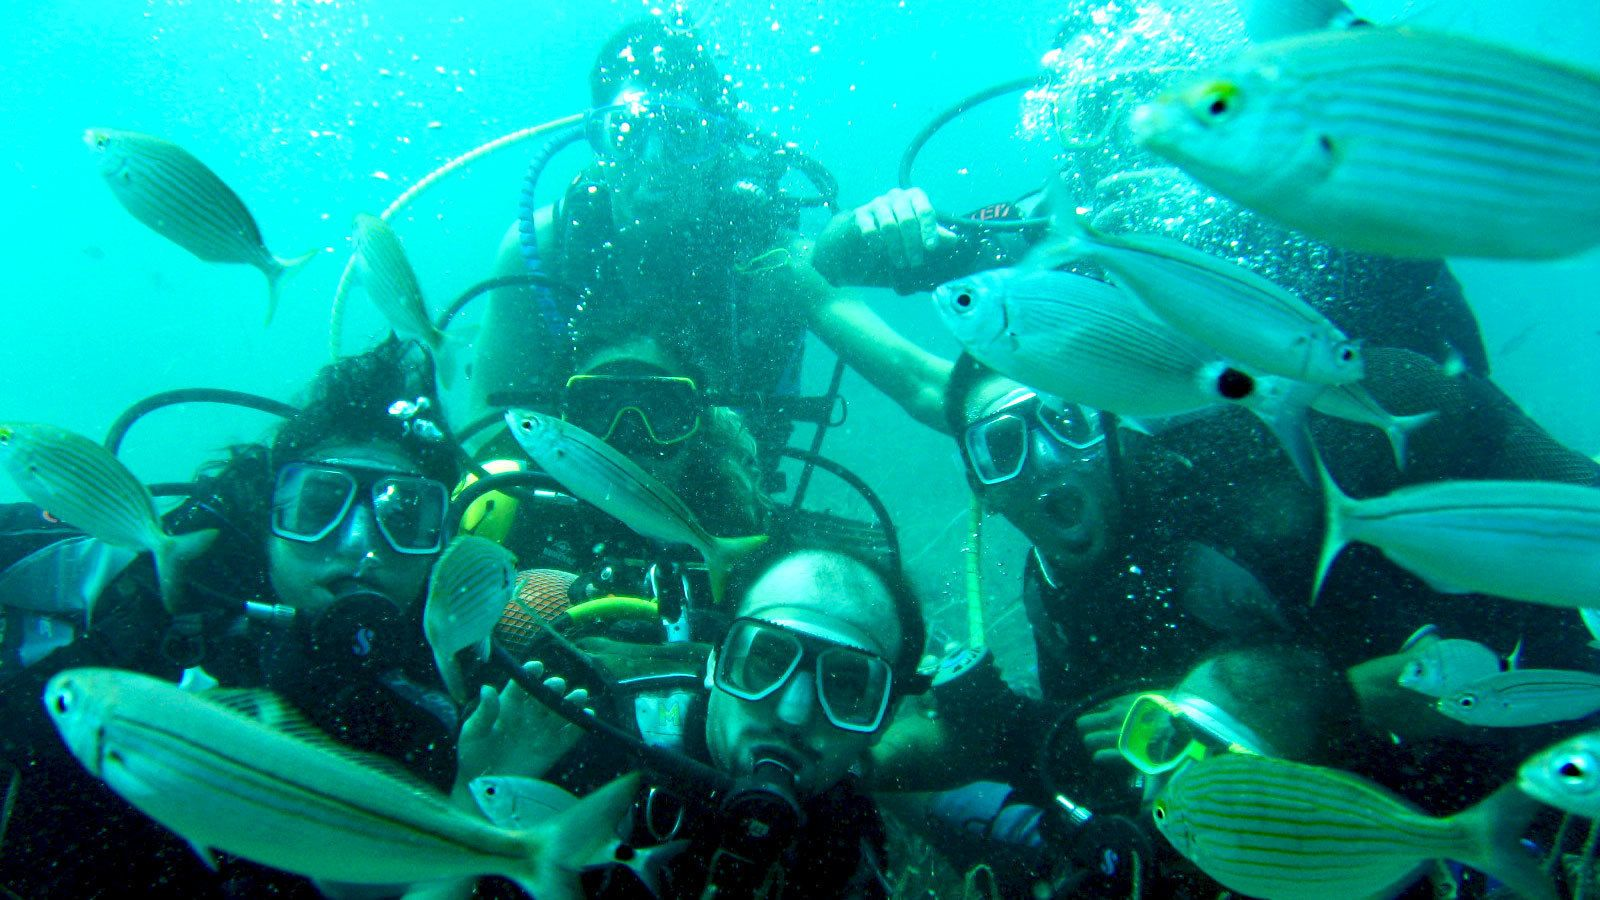 scuba divers surrounded in fish